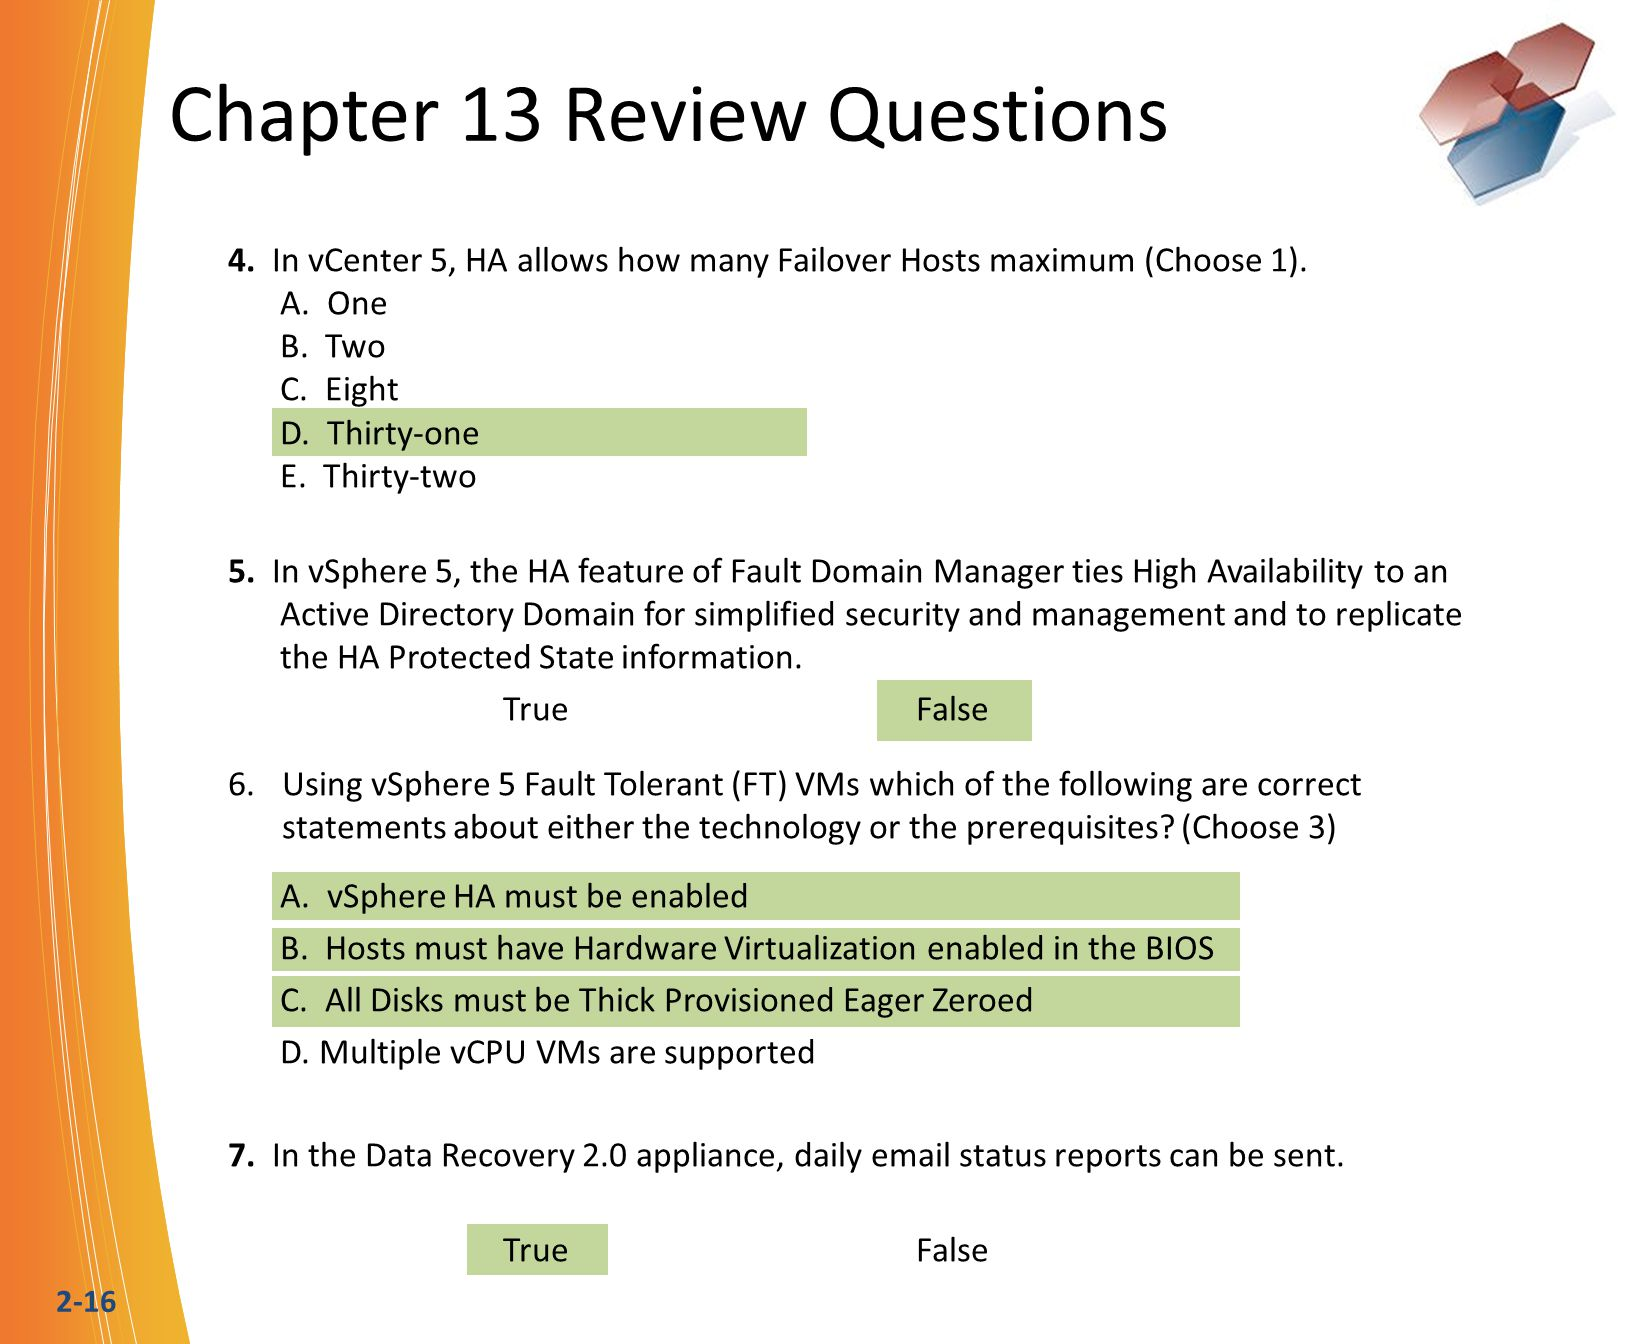 2-16 Chapter 13 Review Questions 4. In vCenter 5, HA allows how many Failover Hosts maximum (Choose 1). A. One B. Two C. Eight D. Thirty-one E. Thirty